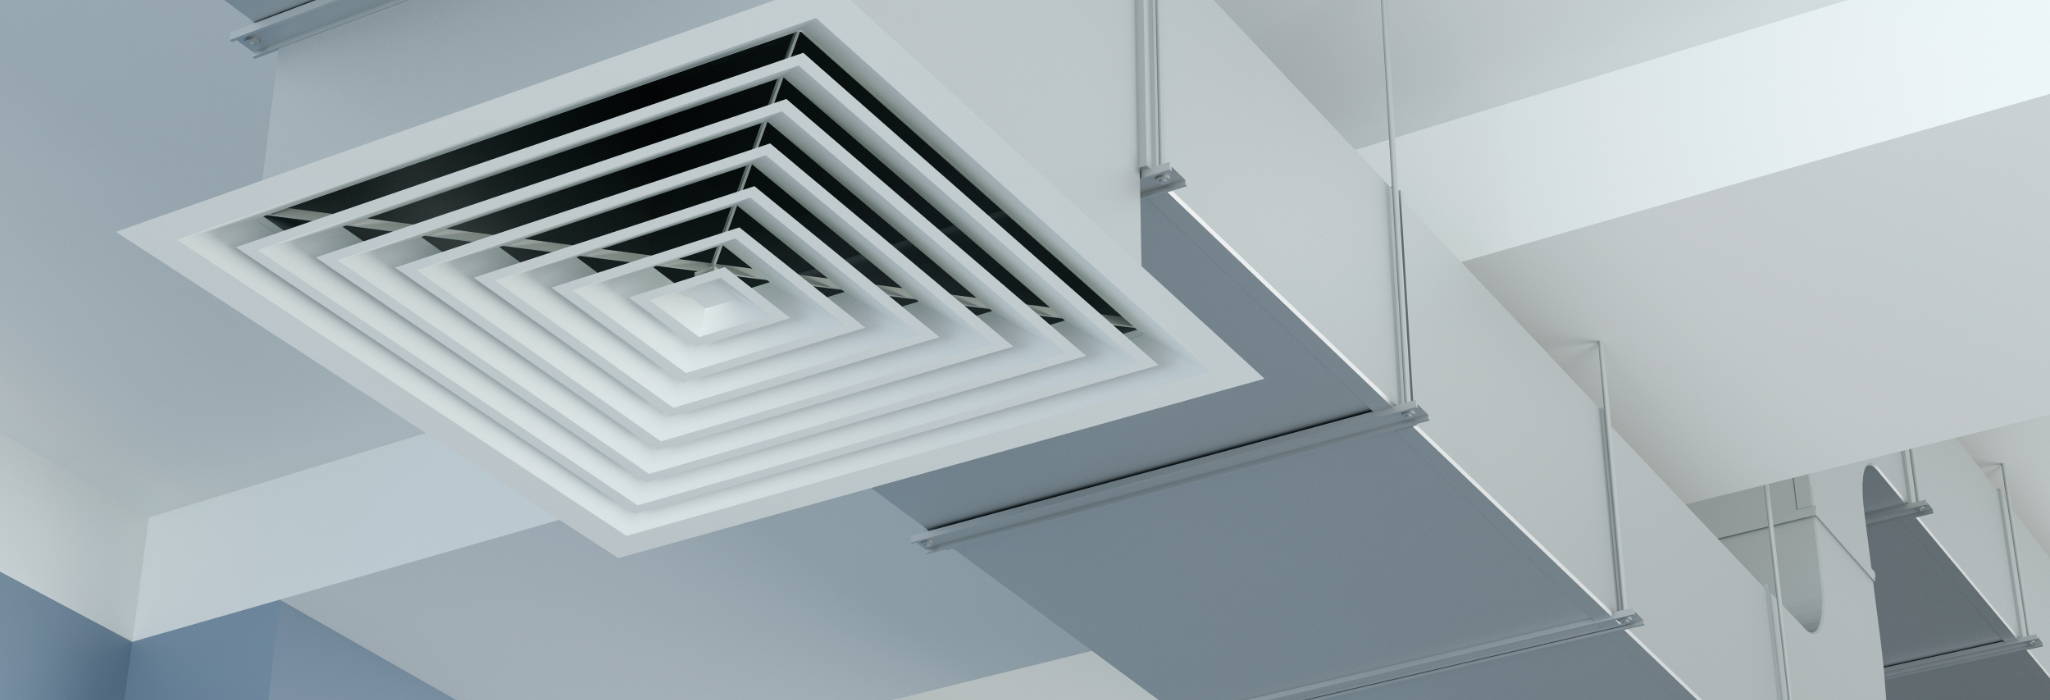 Air Duct Installation and Replacement